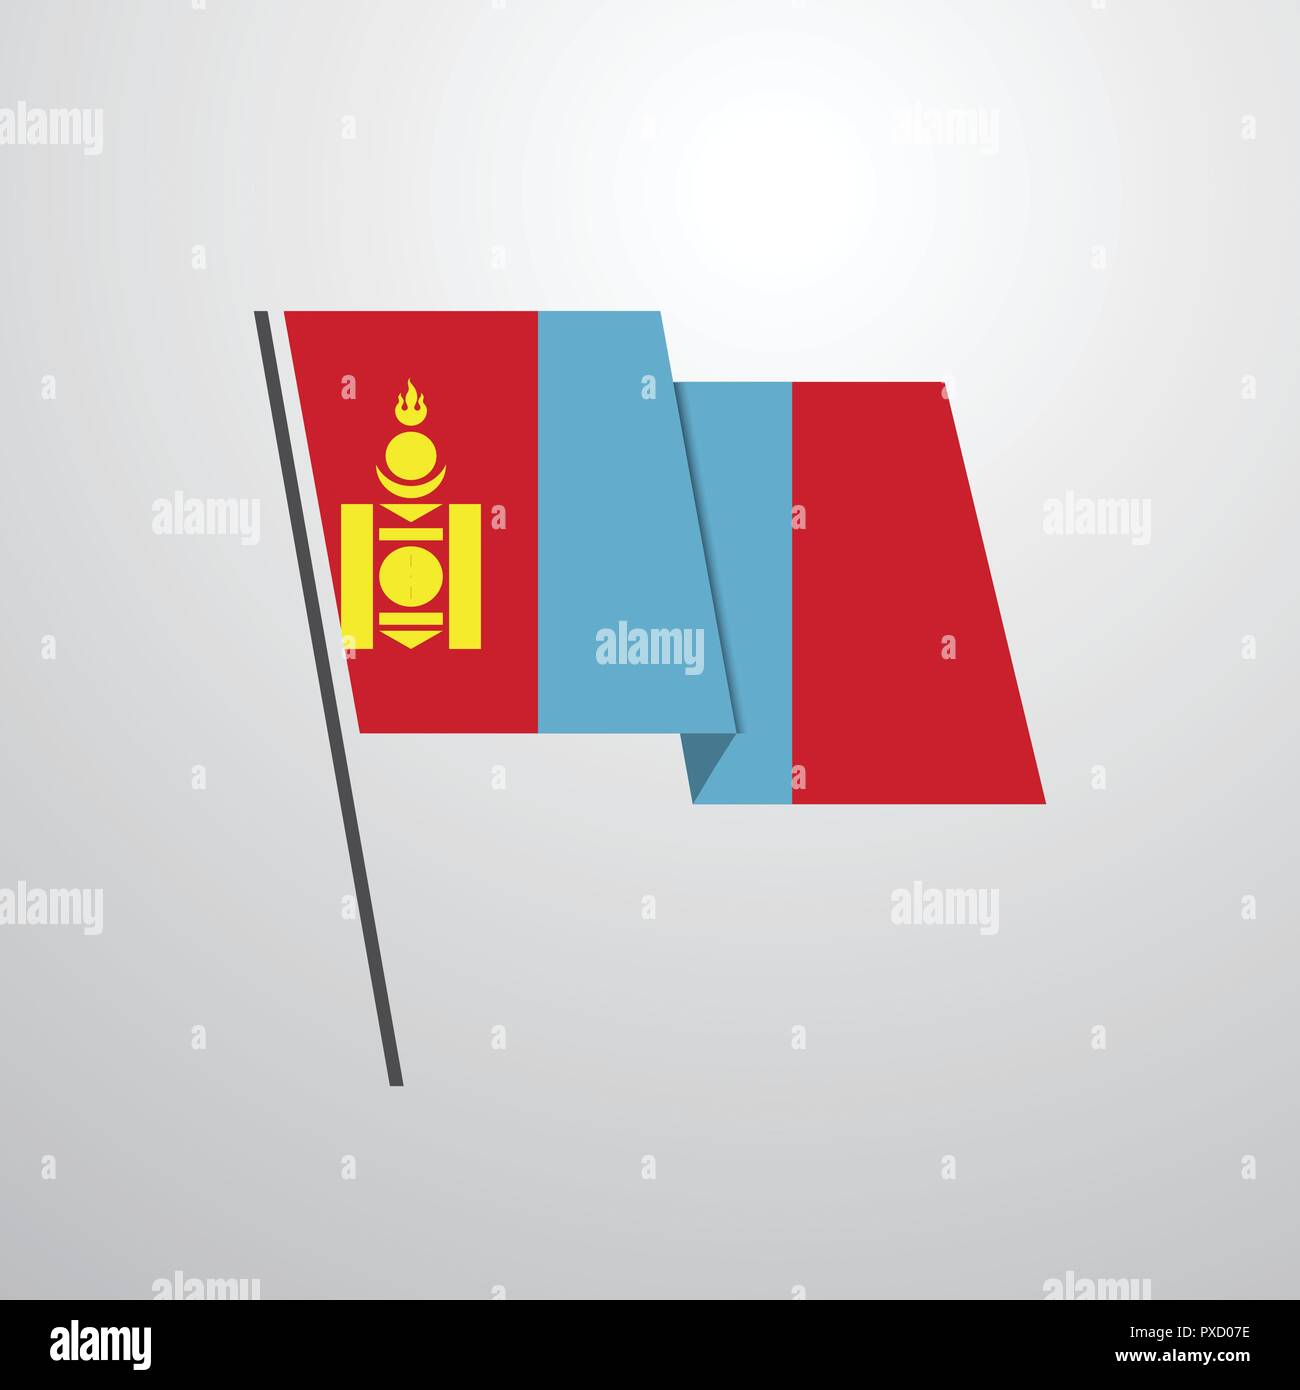 Mongolia - Stock Vector